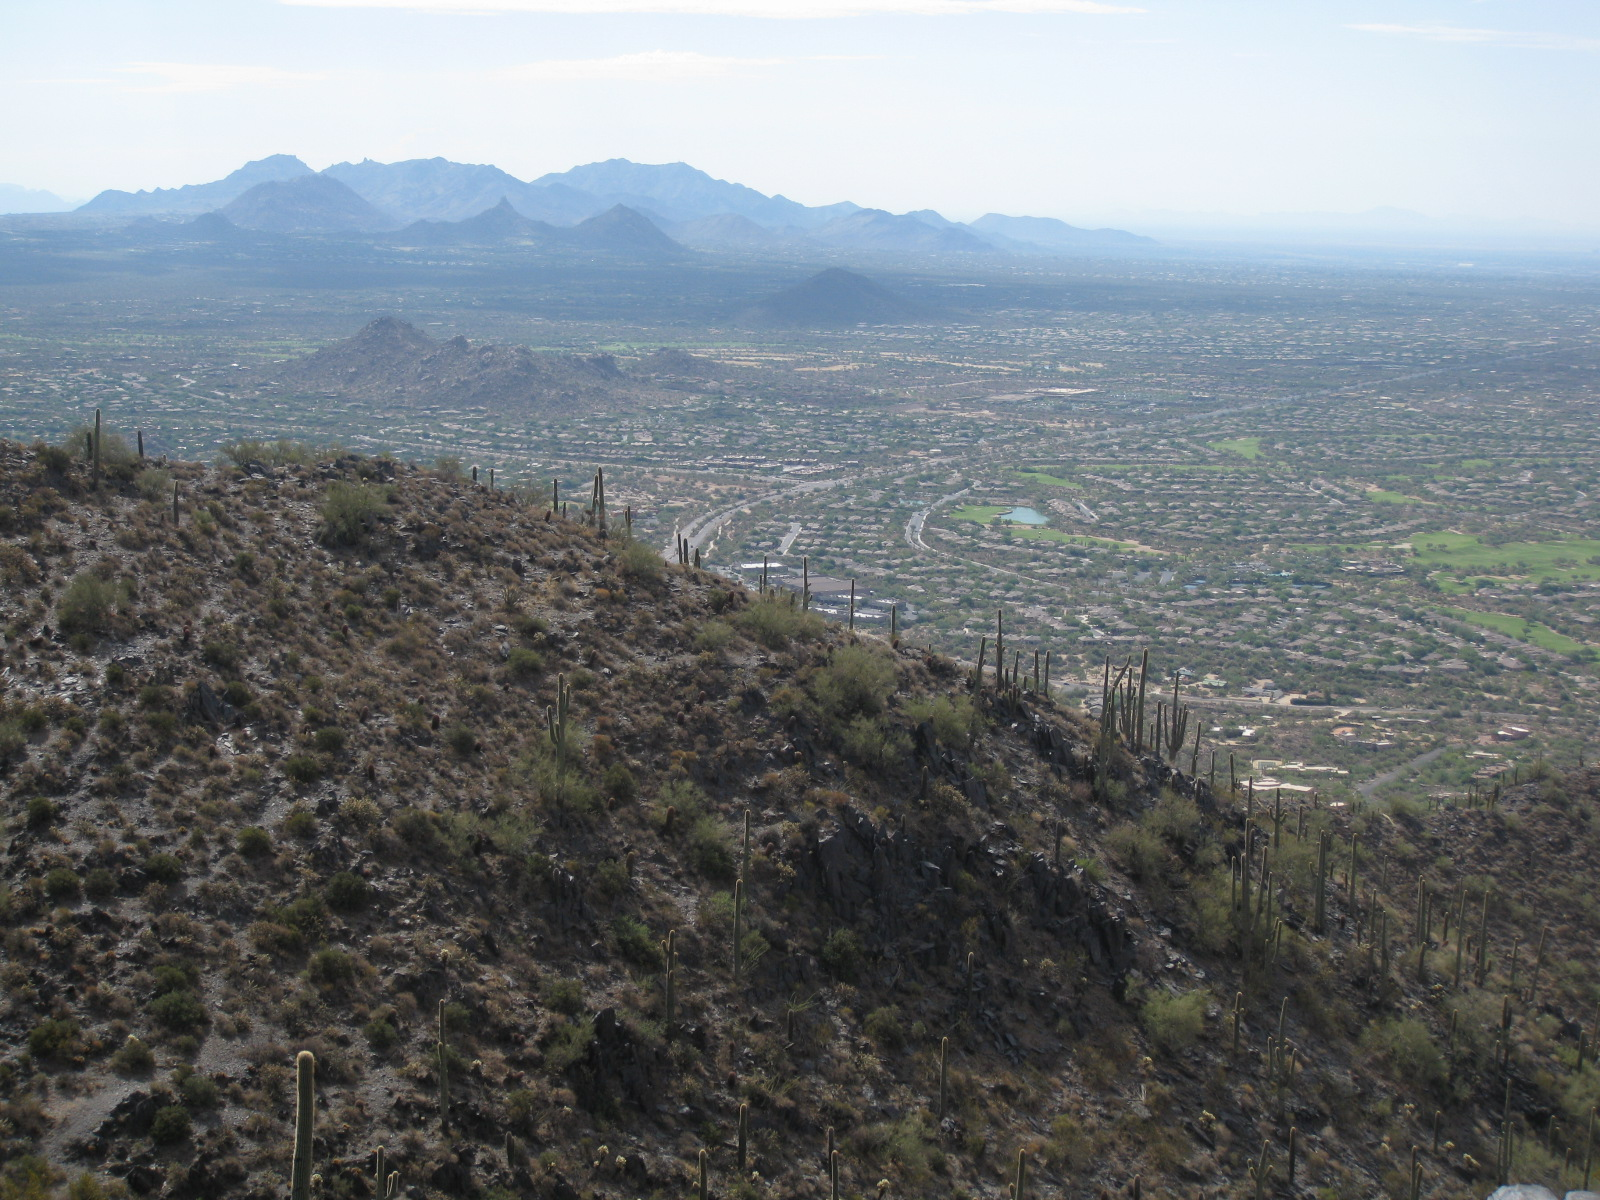 View of the McDowell Mountains